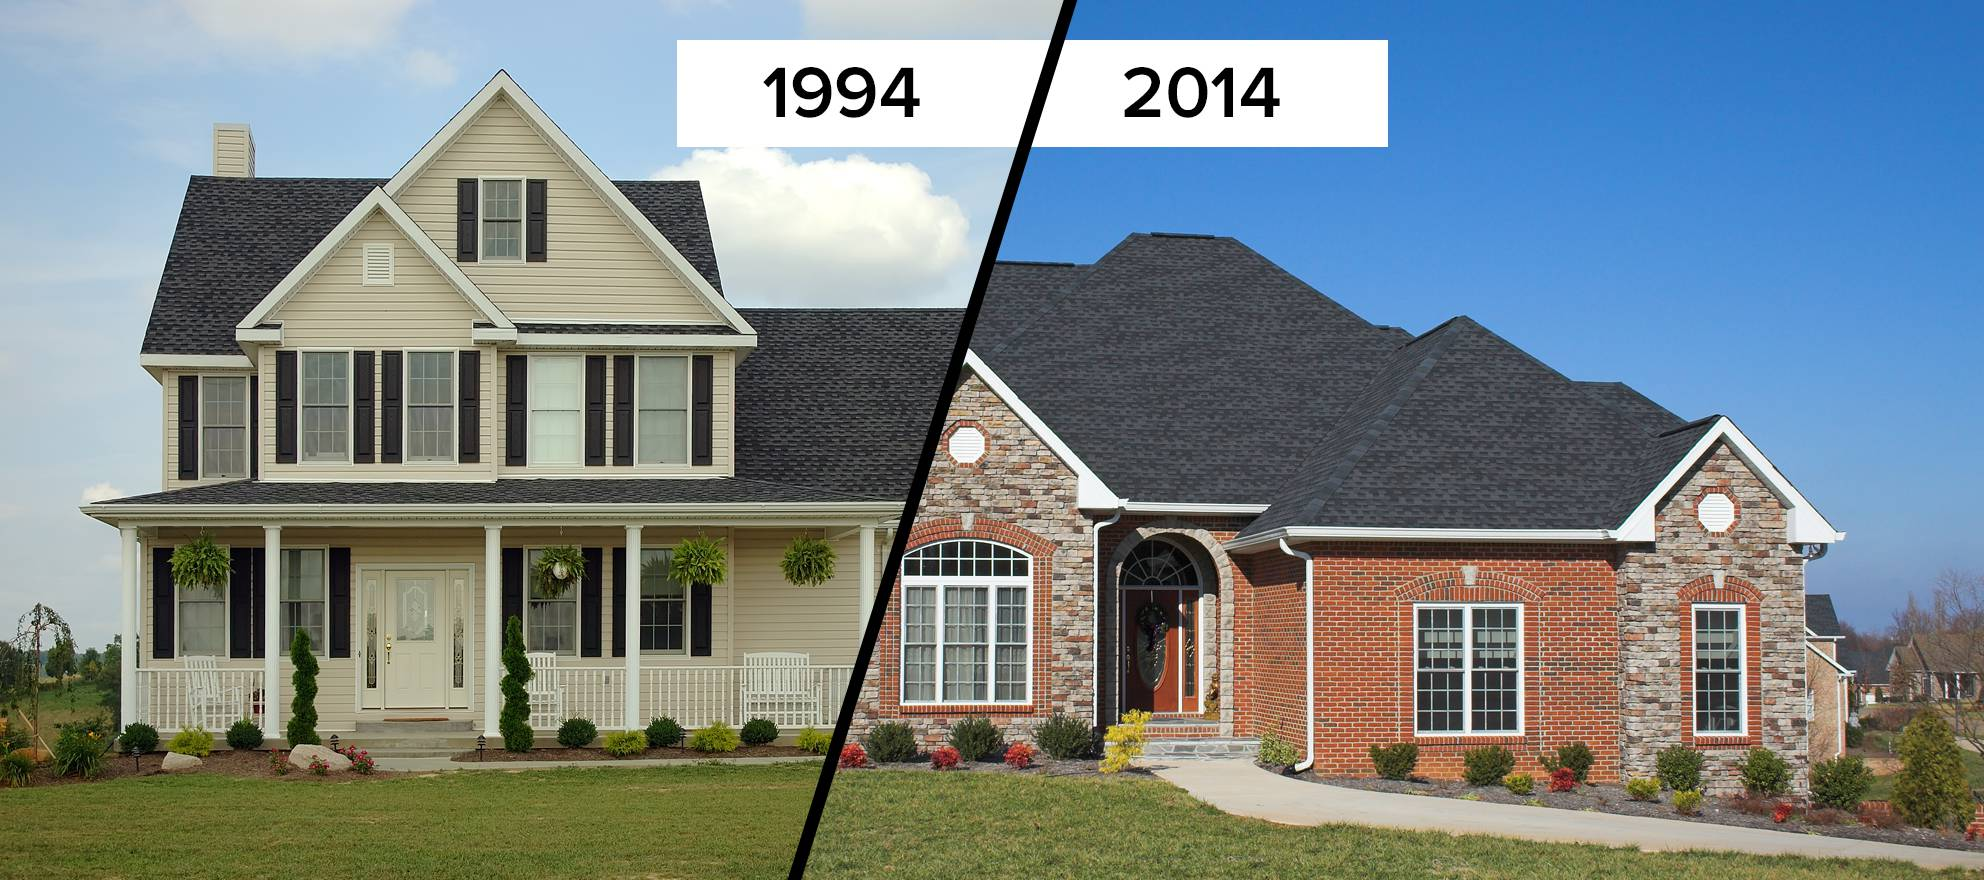 Infographic: Evolution of the American home, 1994-2014